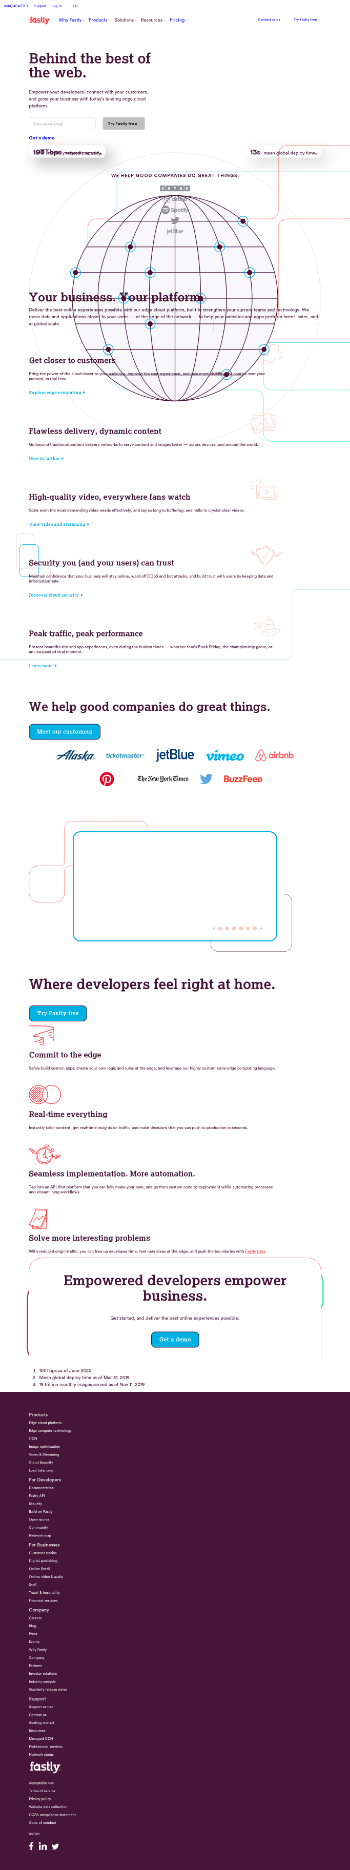 Fastly, Inc. Website Screenshot